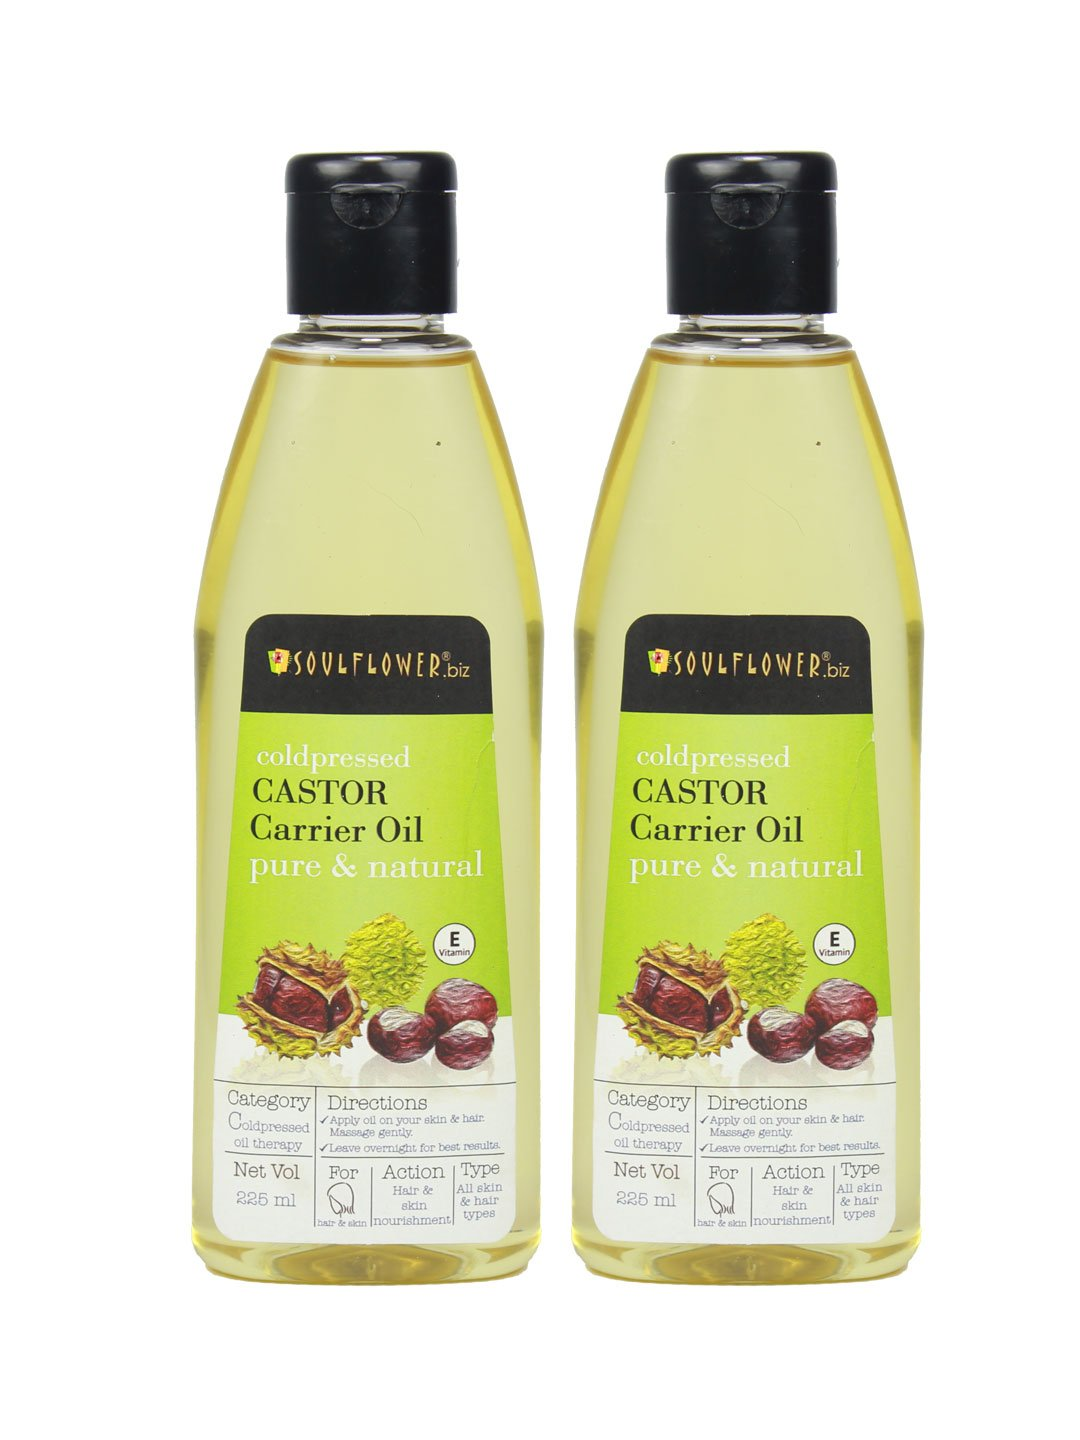 Soulflower Cold Pressed Castor Hair Oil, 225 ml (Pack Of 2) product image